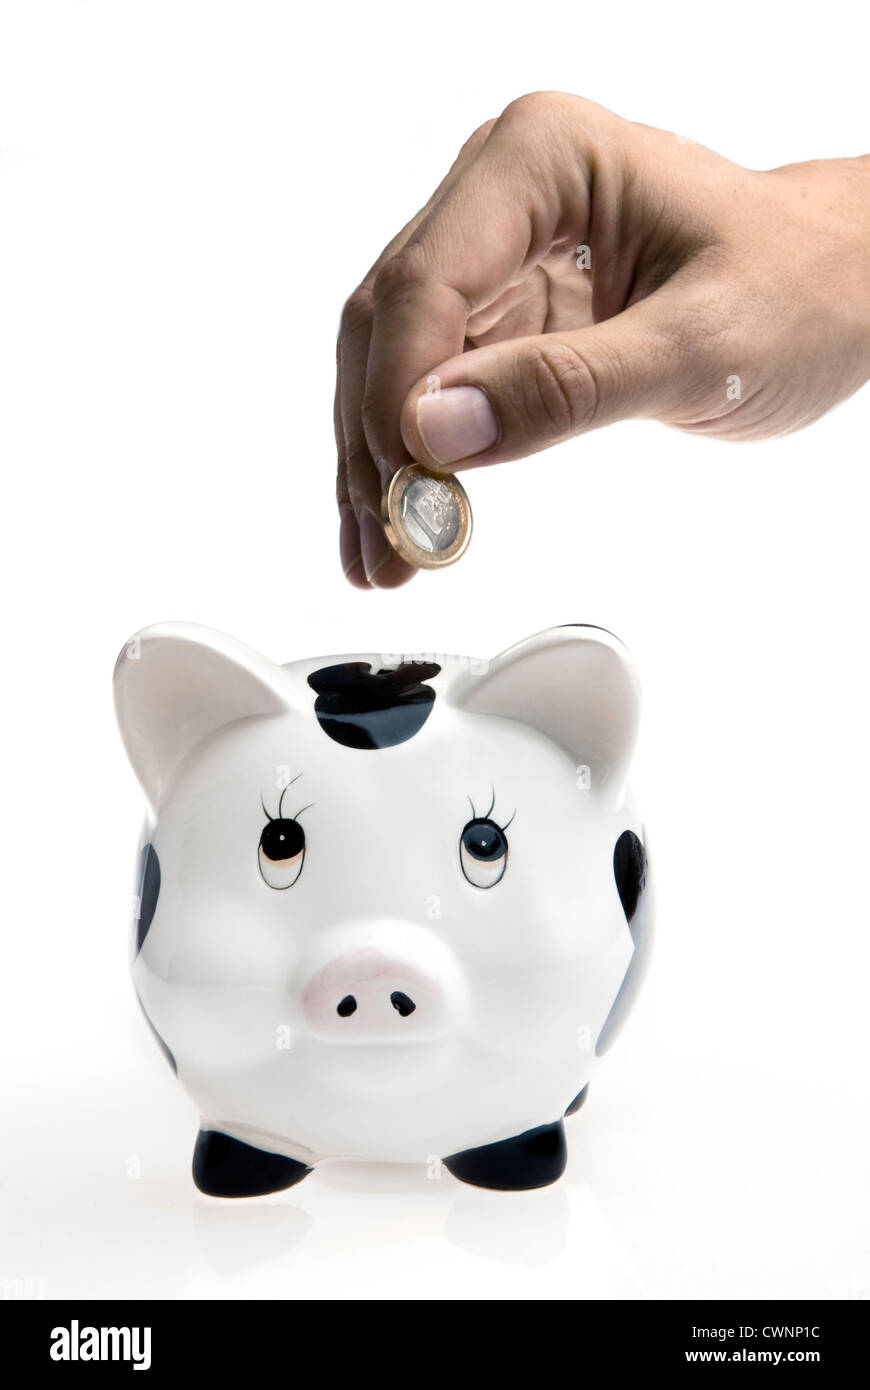 Coin being dropped into a piggy bank on white background - Stock Image